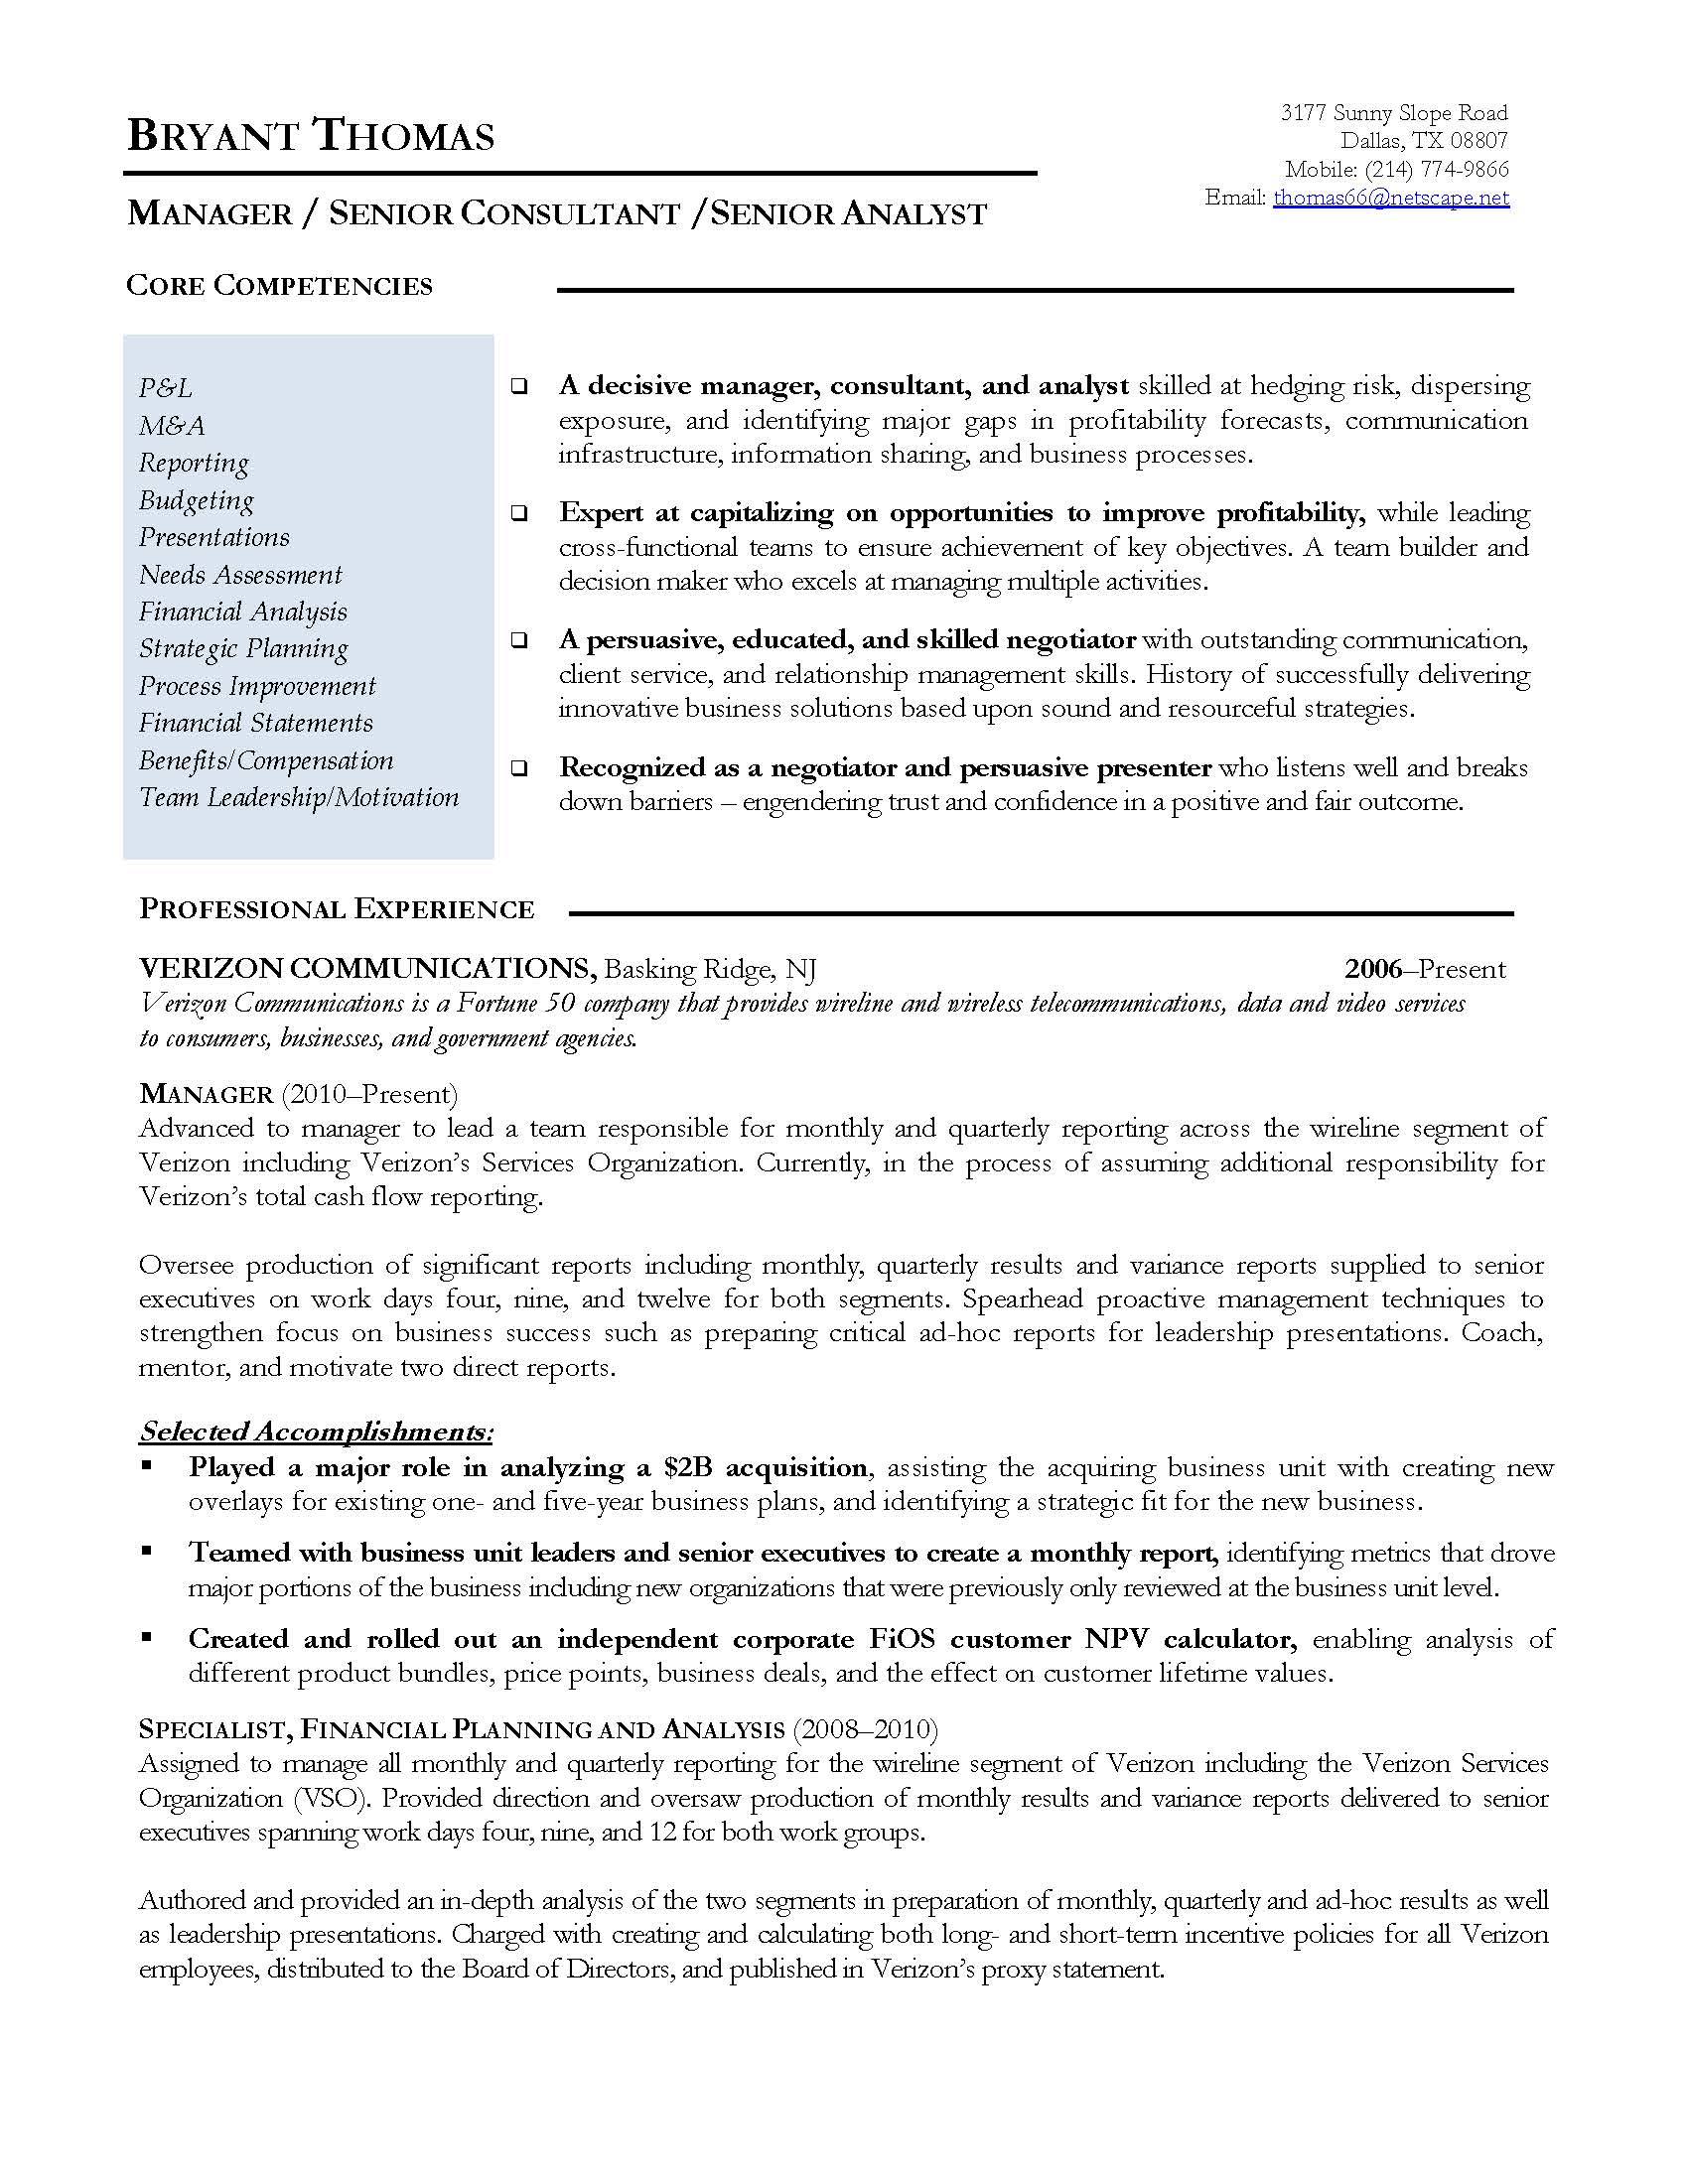 finance manager resume sample provided by elite resume writing services - Finance Manager Resume Template